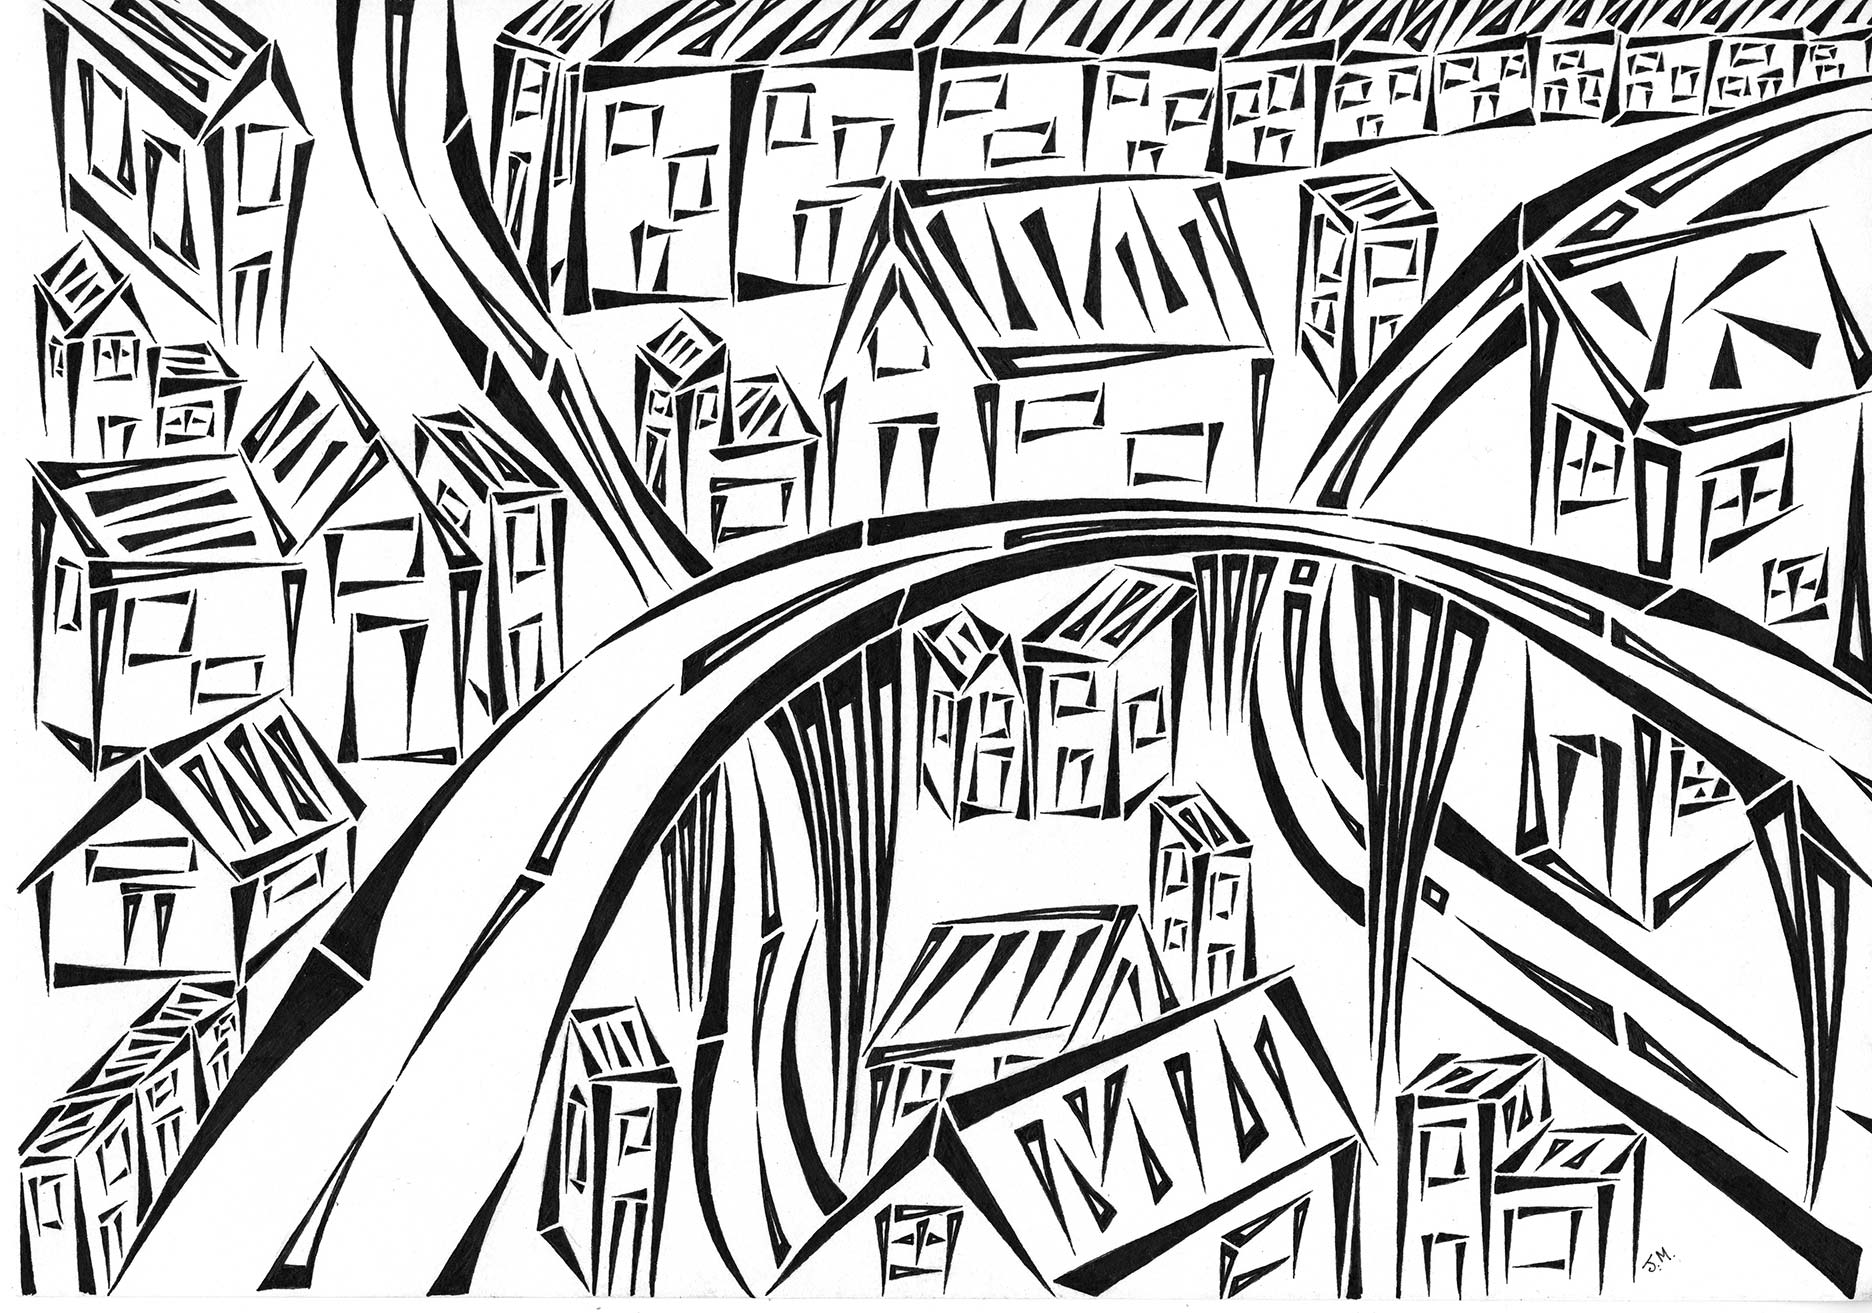 town-circled-by-roads-copy